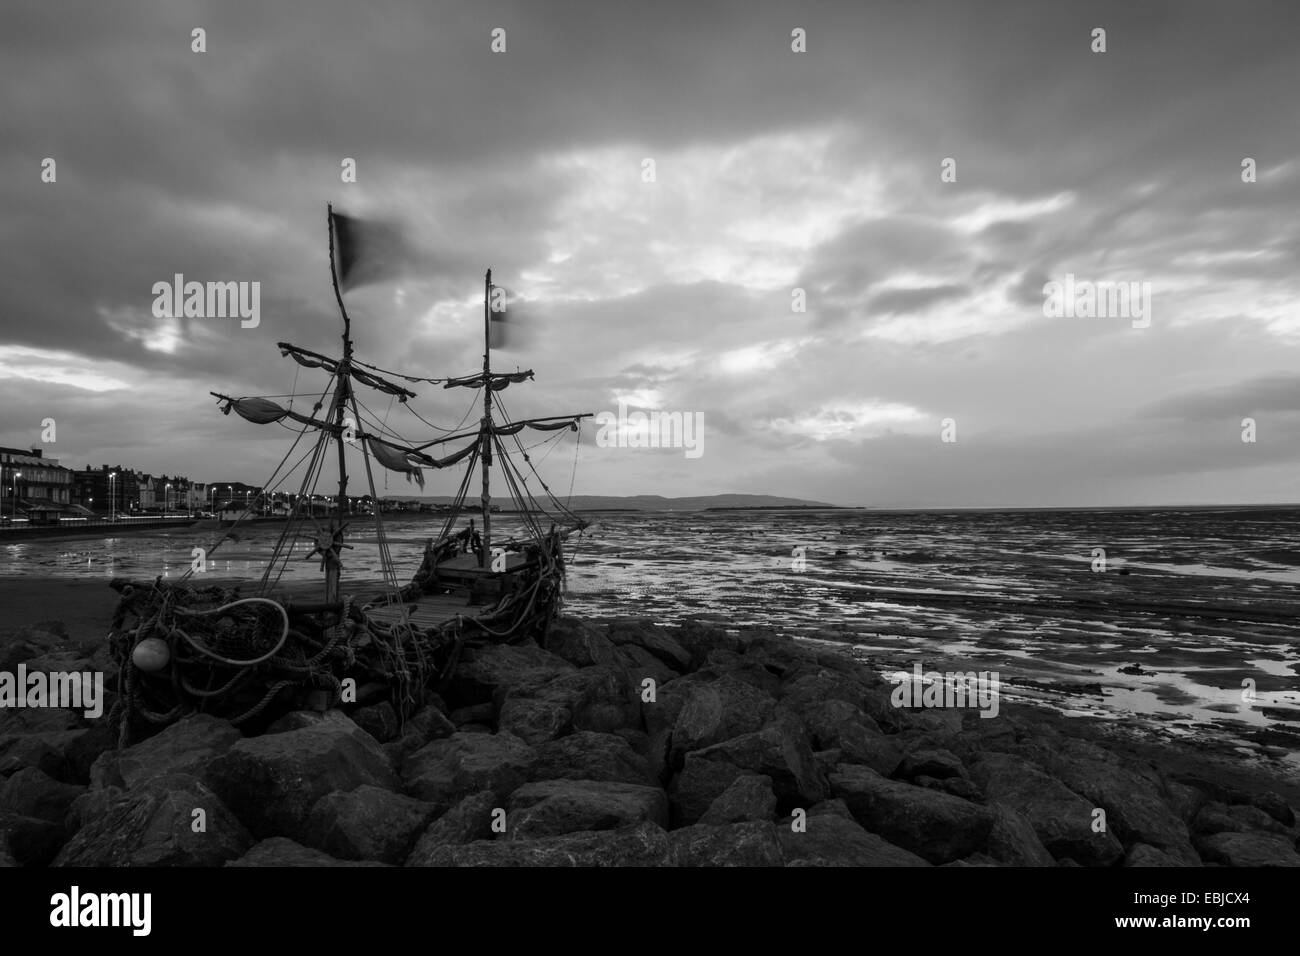 Drift wood Pirate ship, Wirral - Stock Image